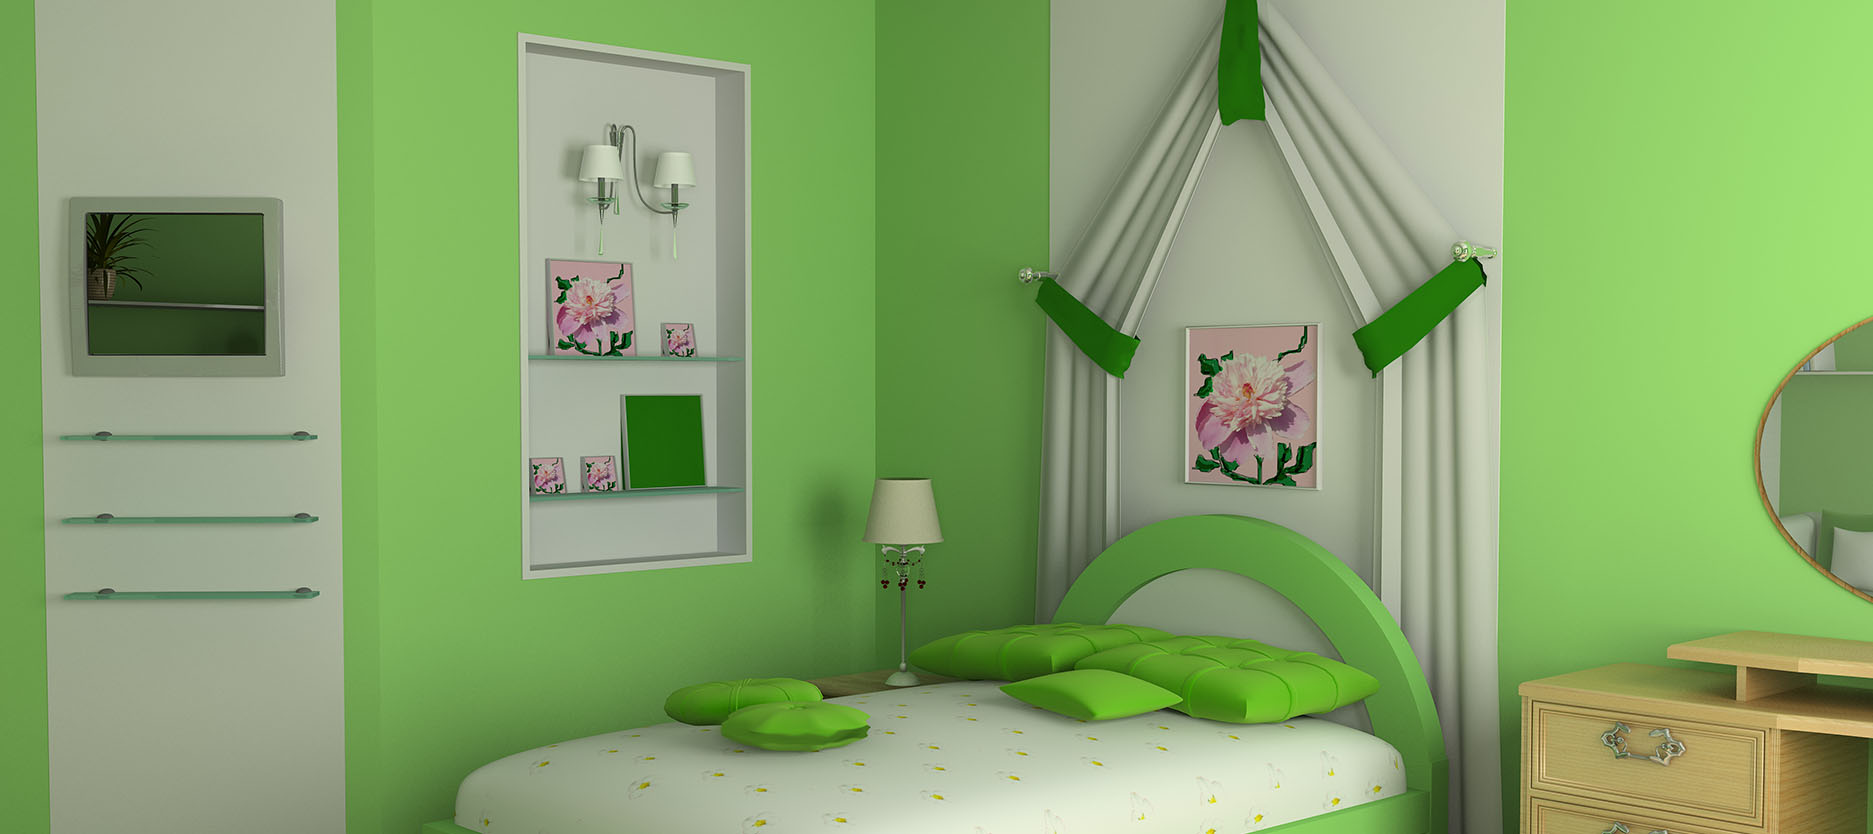 Wall Paint Design Ideas for Your Children's Bedroom